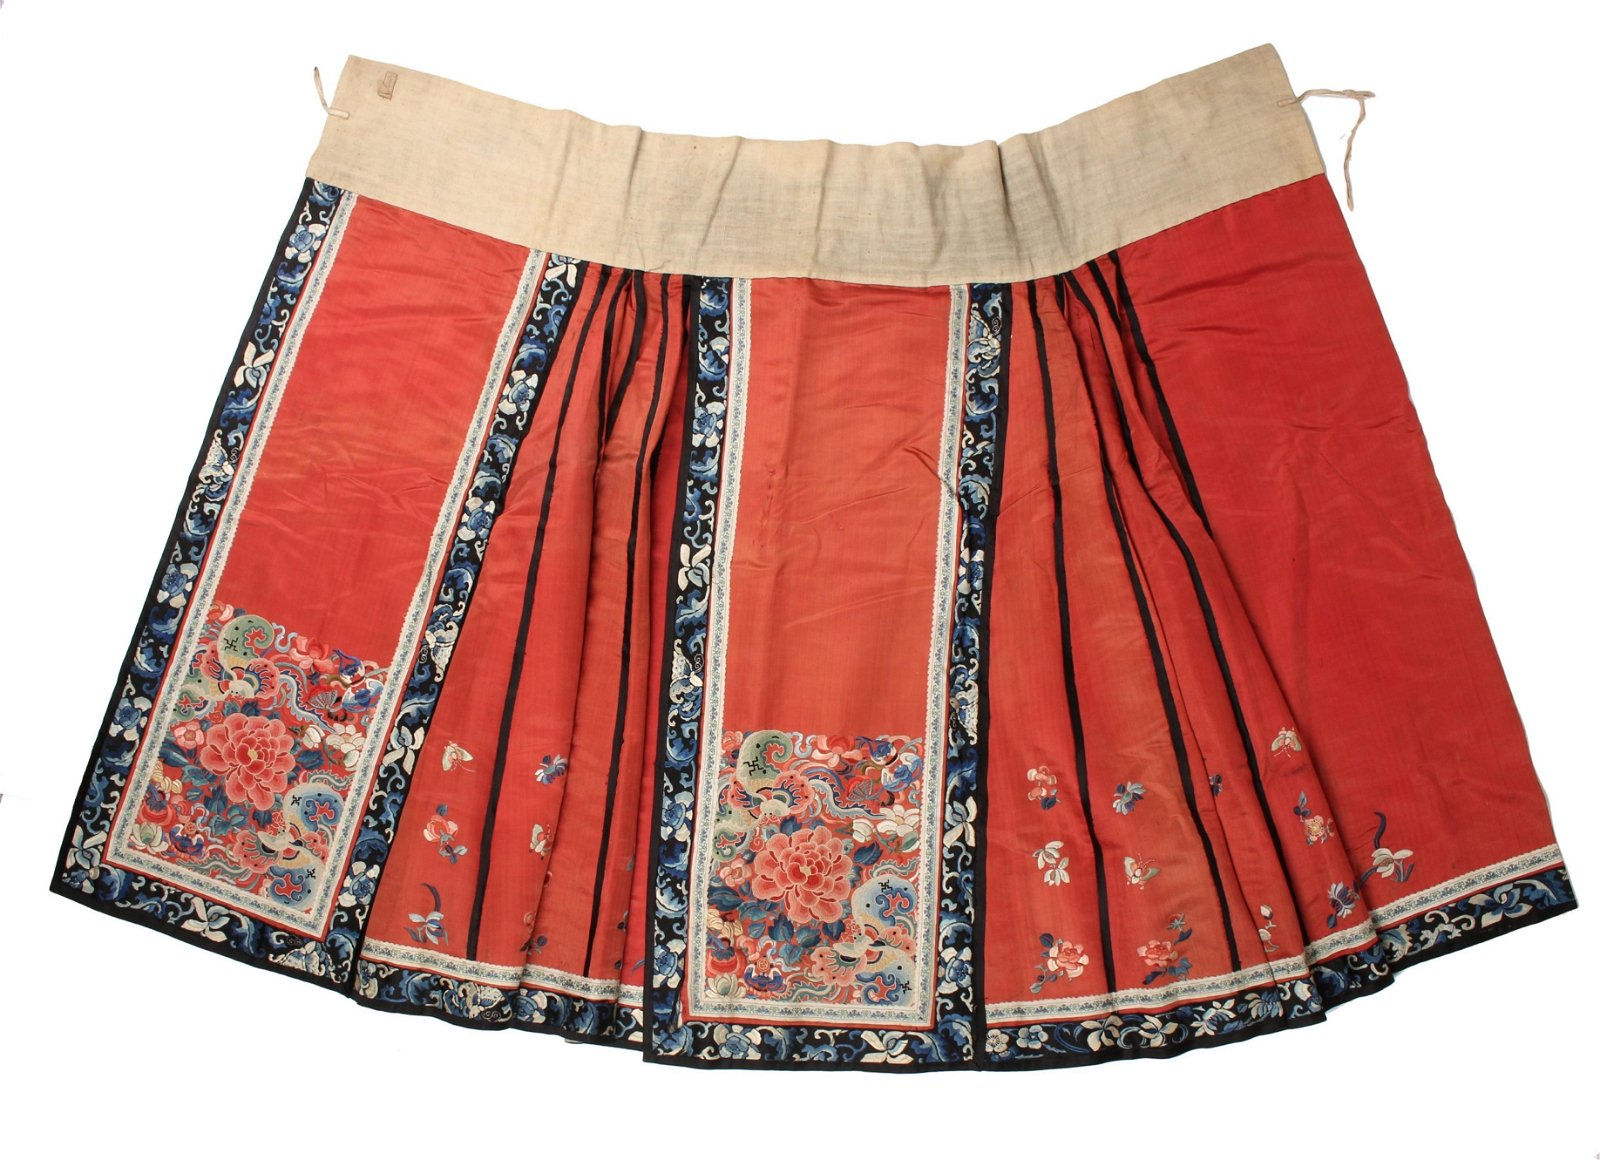 19TH C. CHINESE EMBROIDERED SILK SKIRT